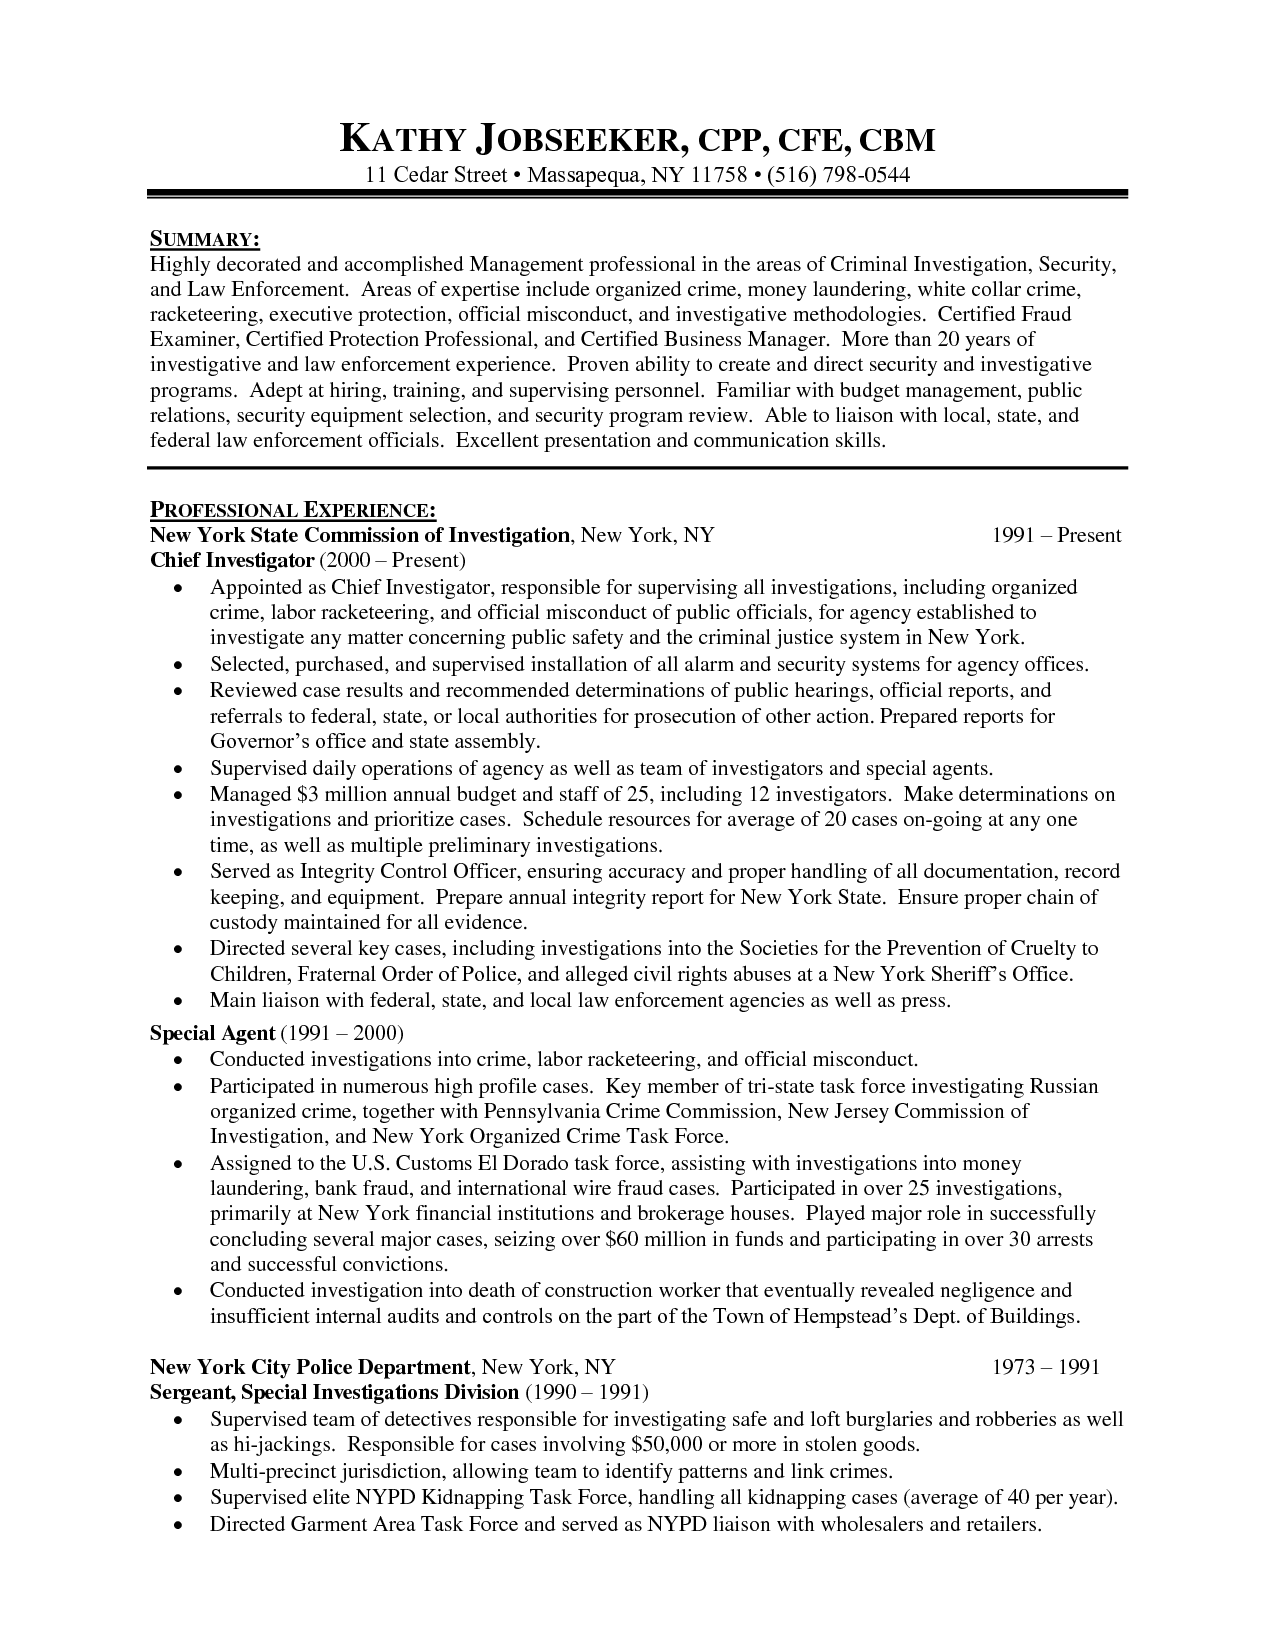 Probation Officer Sample Resume Sample Resume For Police Officer   Resume  CV Cover Letter